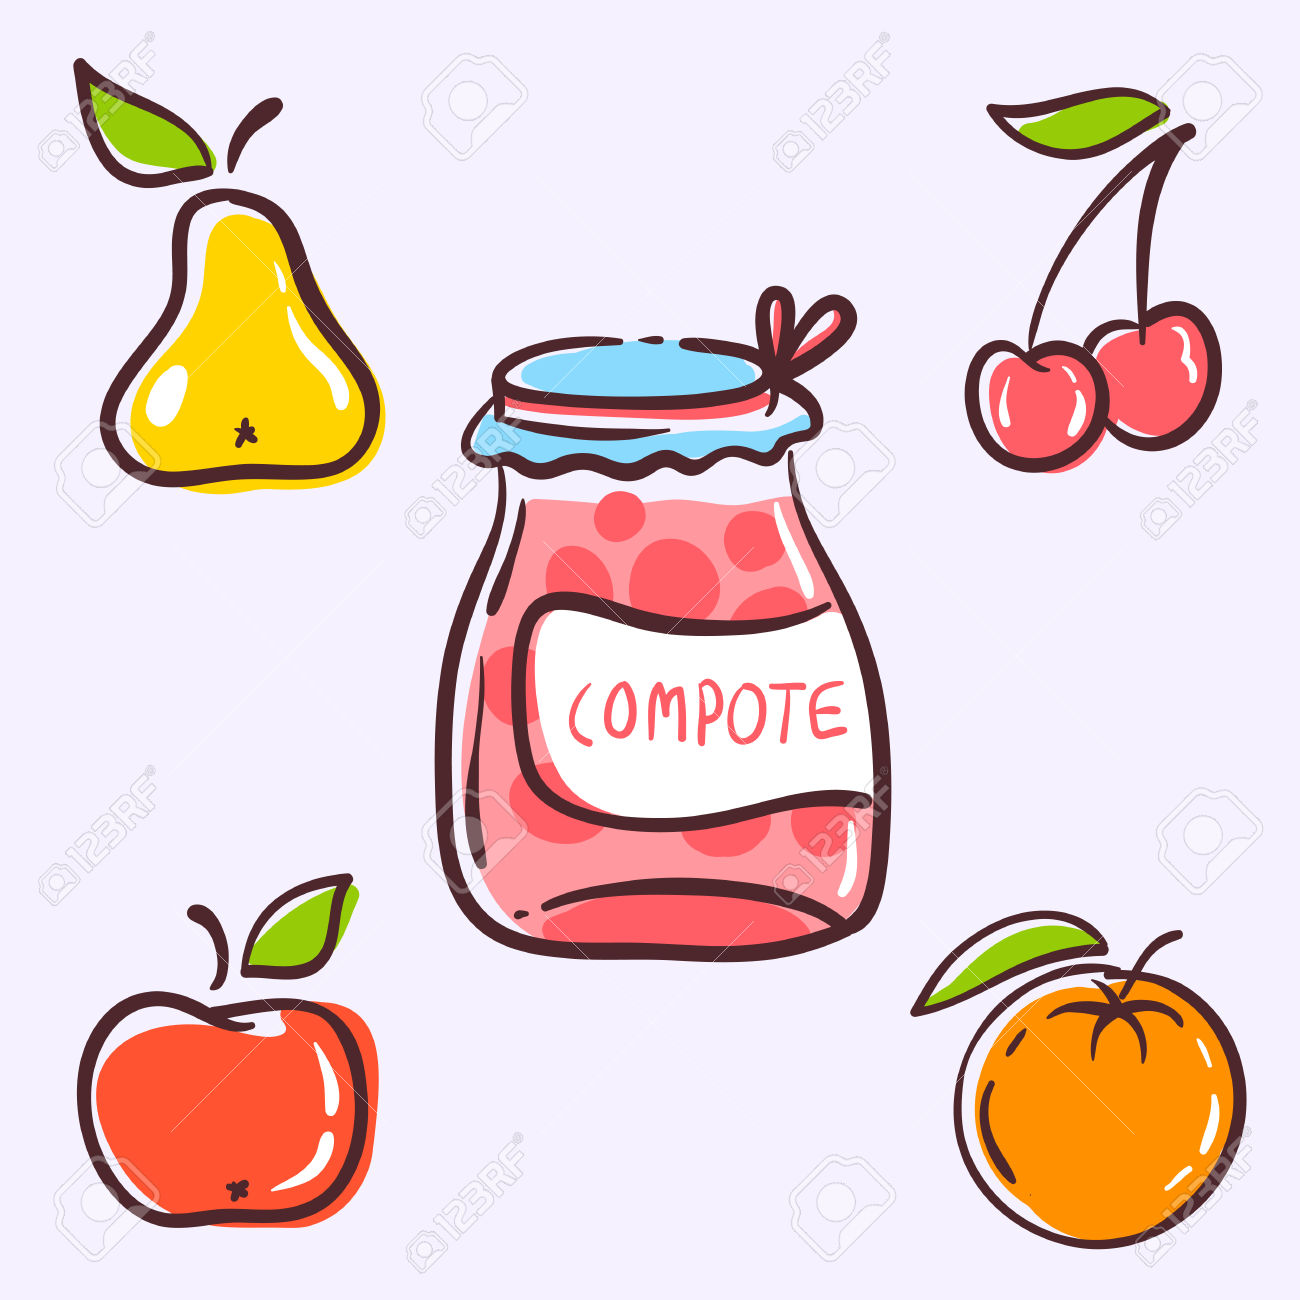 The Compote Fruits Components Consist Of Red Apple, Yellow Pear.